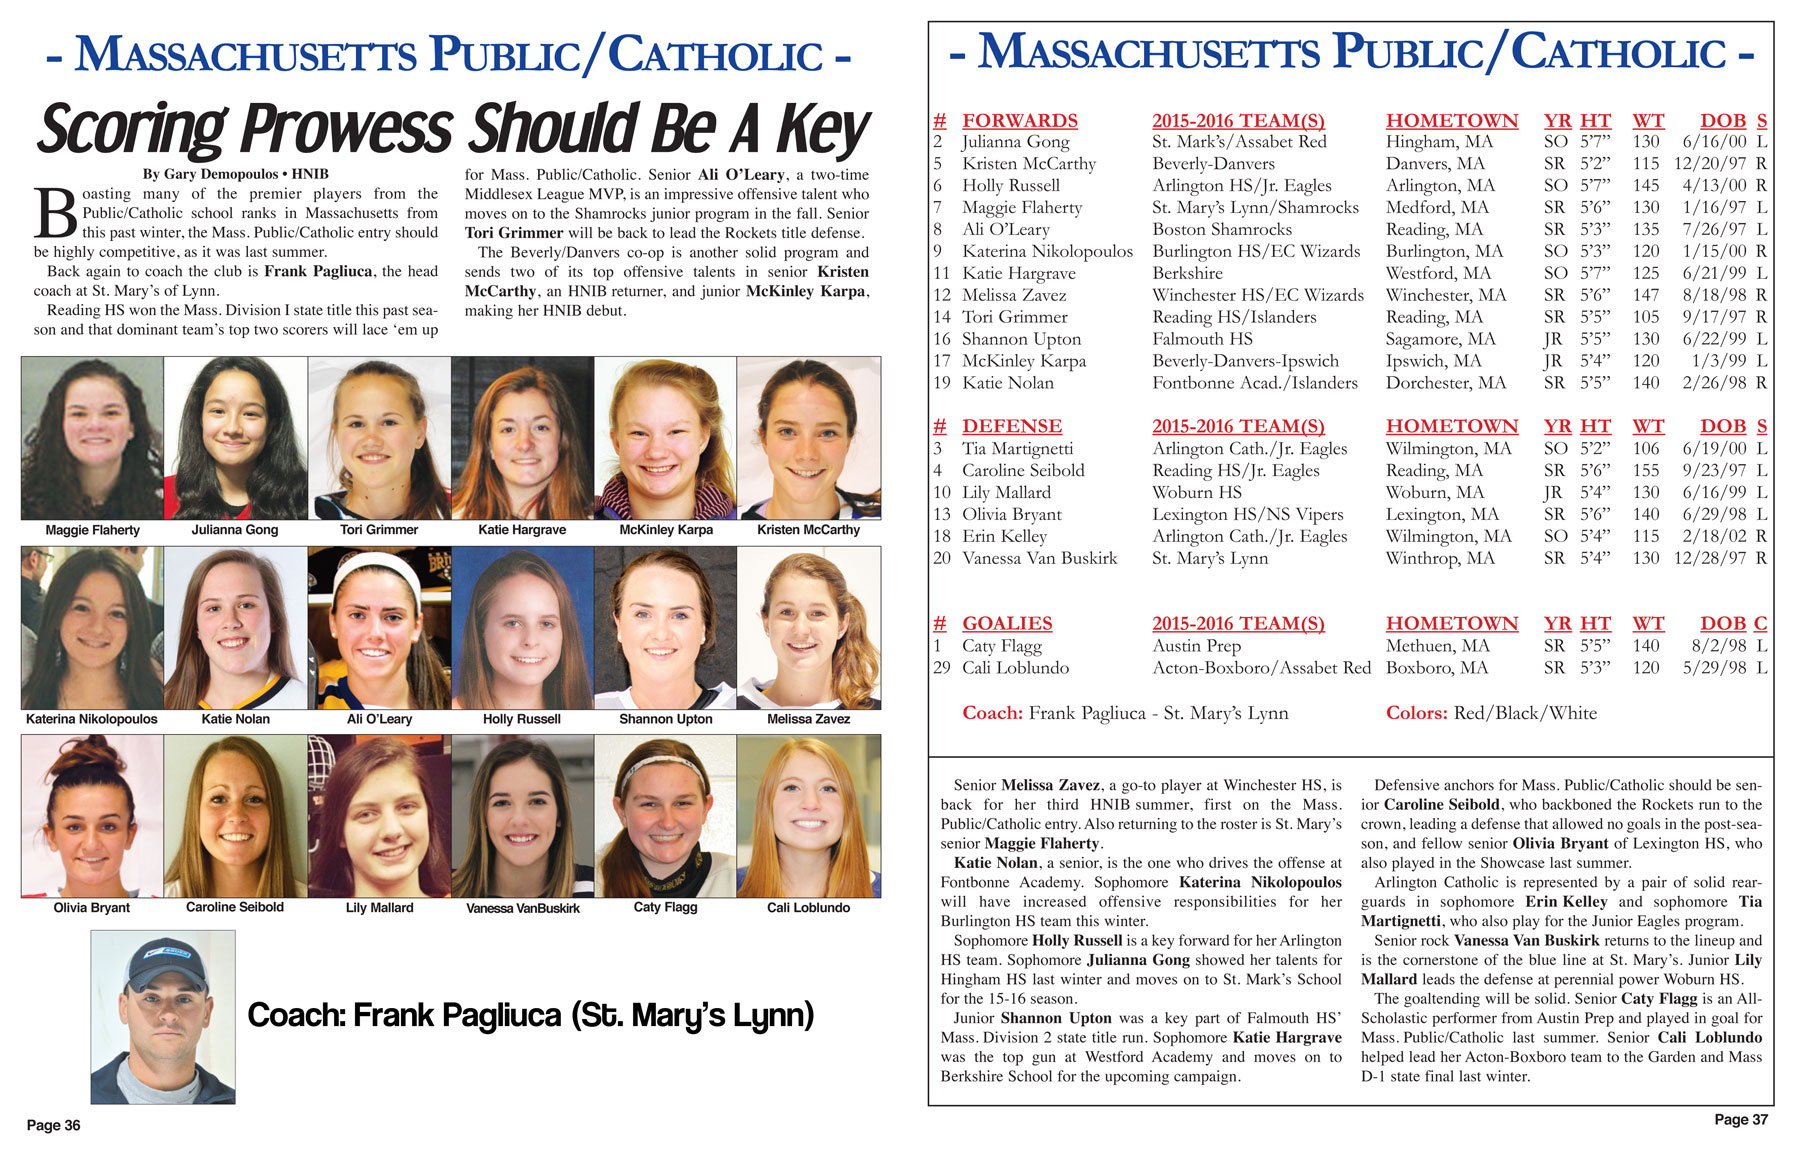 2015-Girls-Major-Showcase-magazine-roster-page